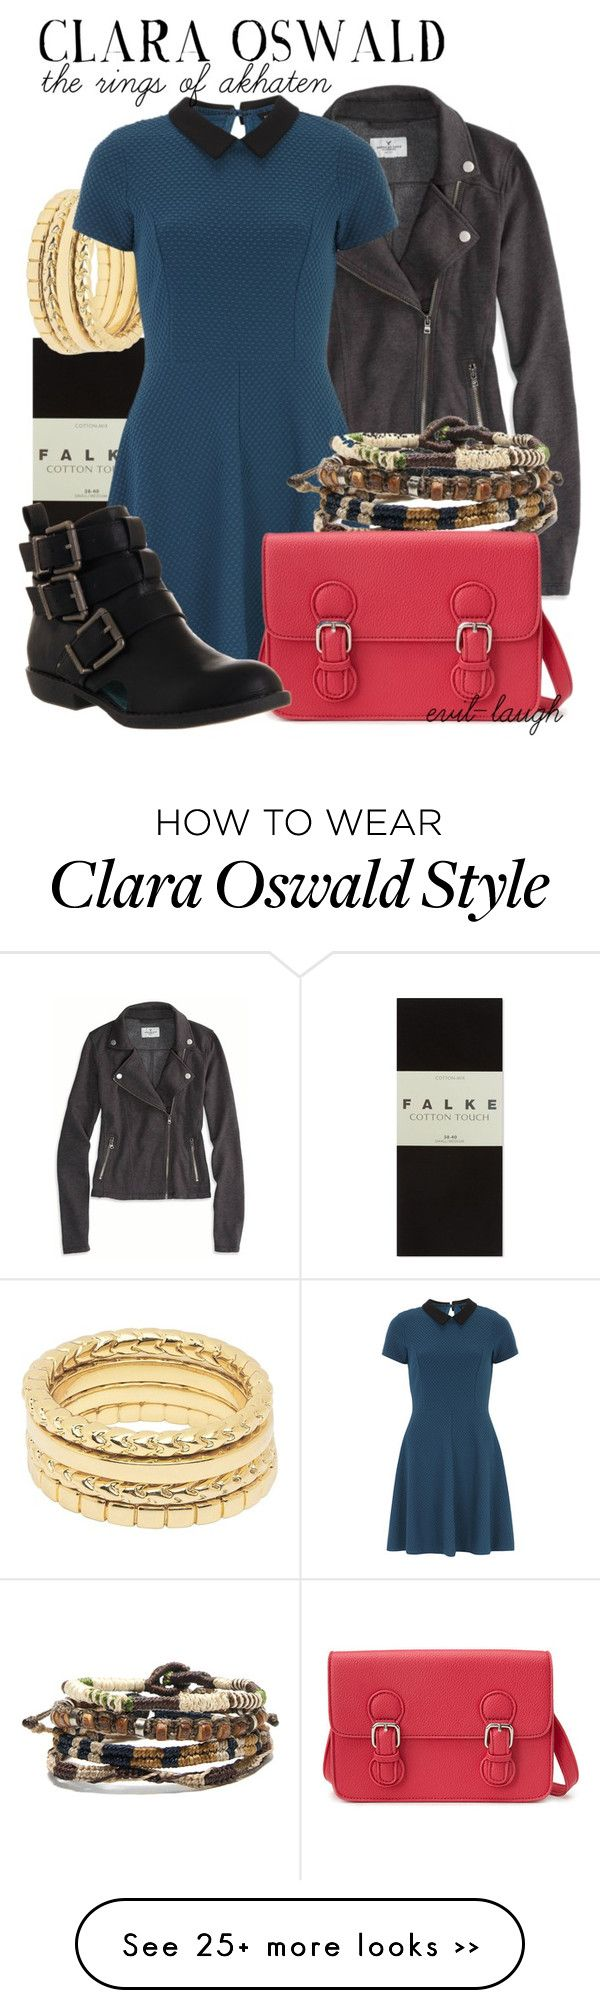 """Clara Oswald -- Doctor Who (The Rings of Akhaten)"" by evil-laugh on Polyvore"